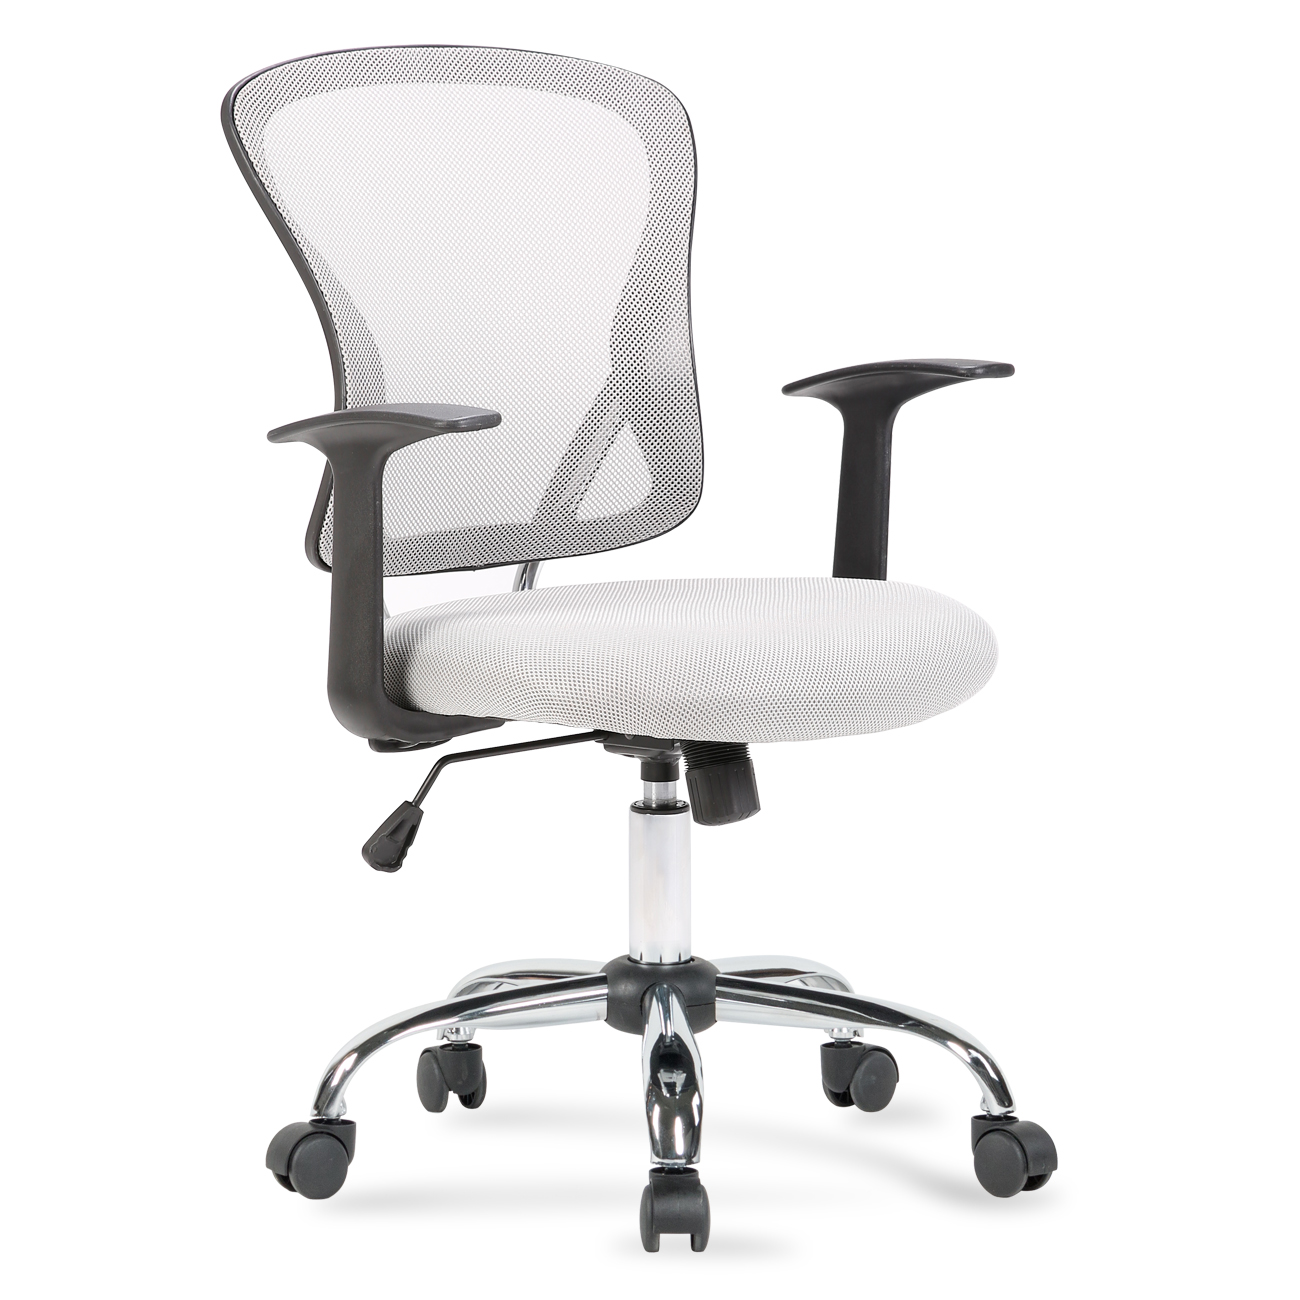 Details About New Ergonomic Midback Swivel Mesh Task Computer Office Chair Desk Seat Gray